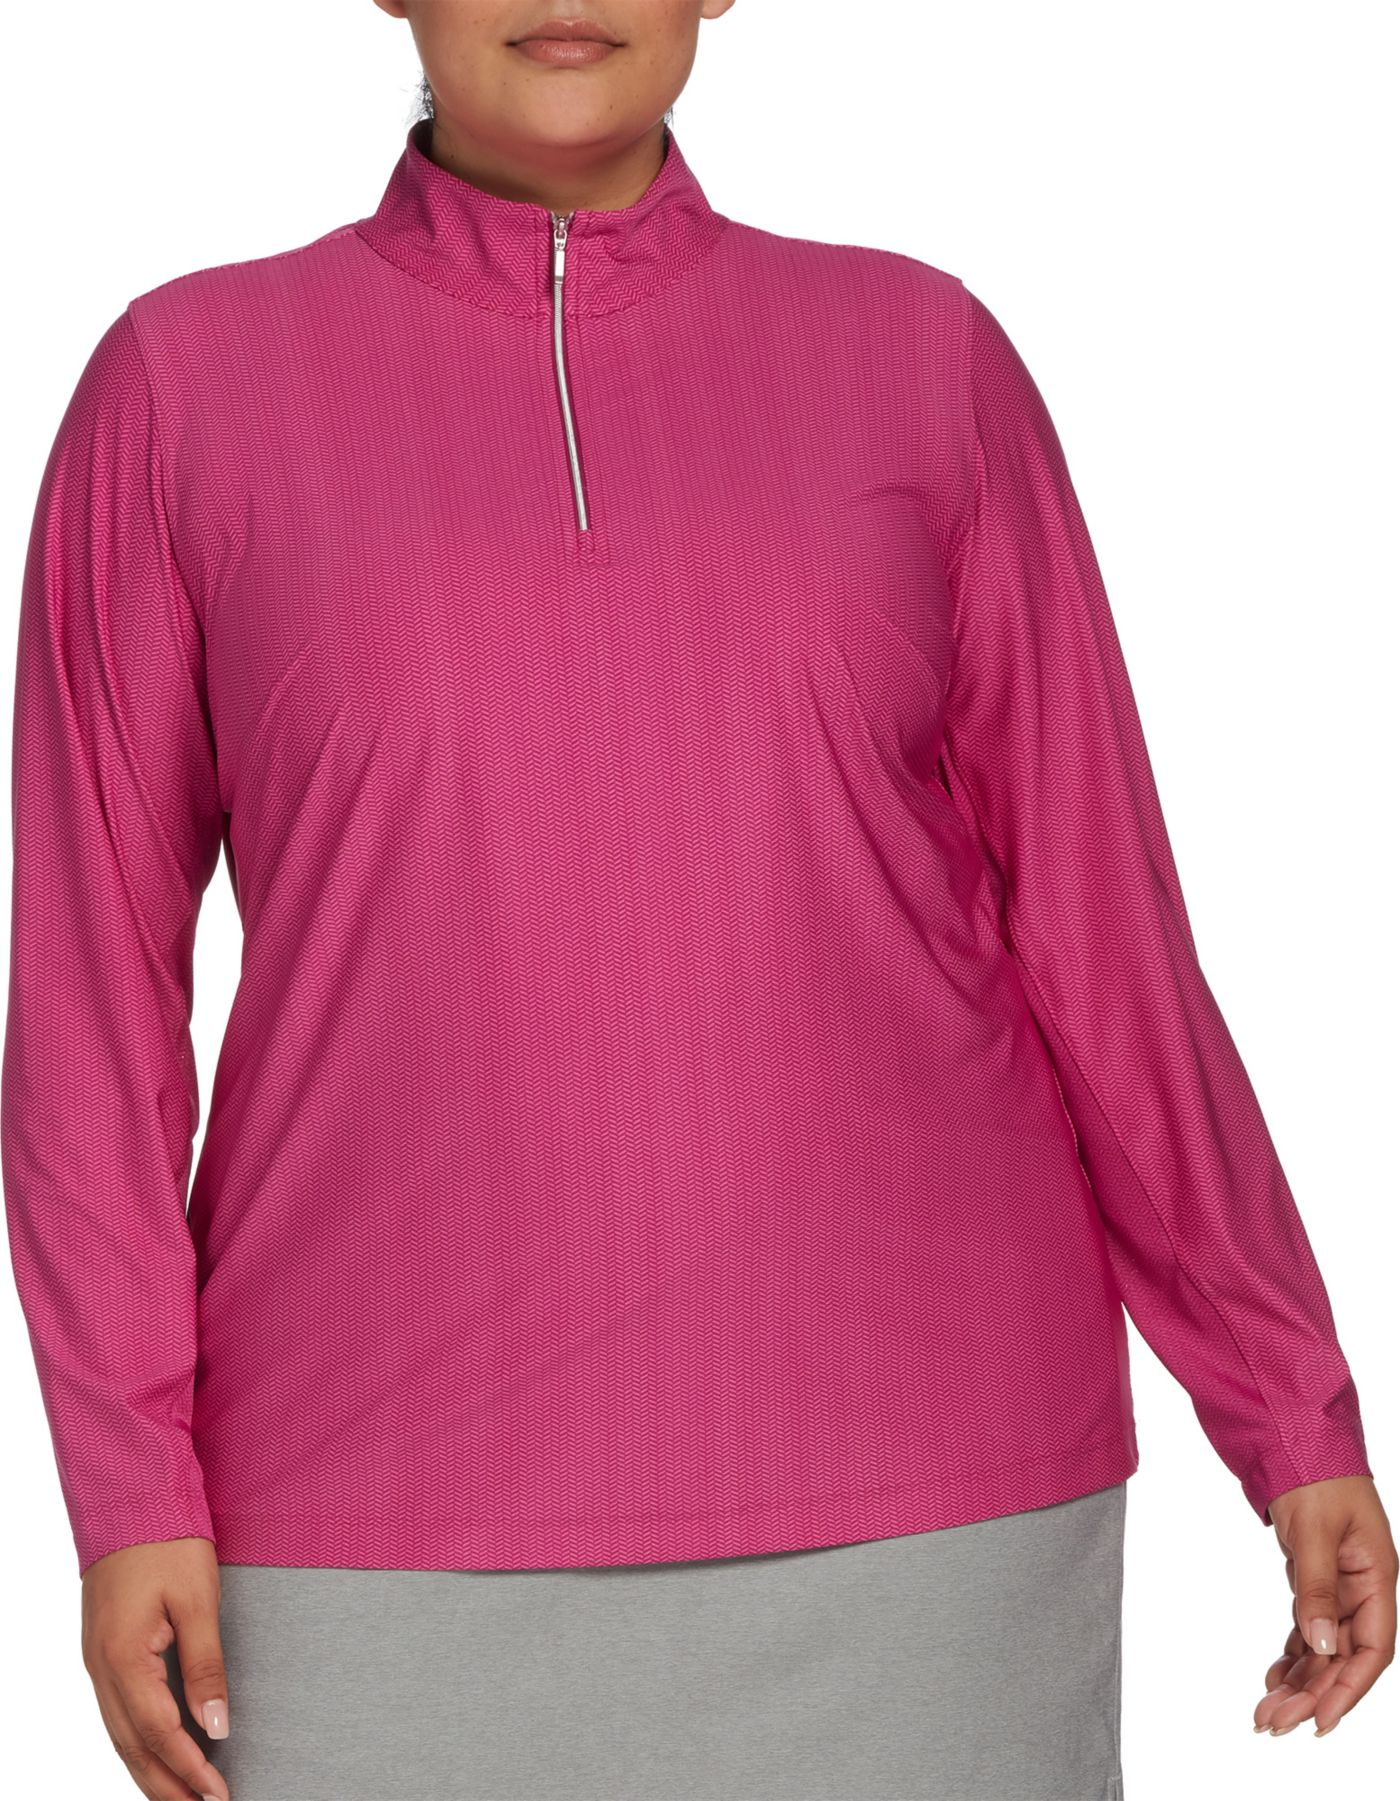 Lady Hagen Women's Printed UV ¼-Zip Golf Pullover - Extended Sizes